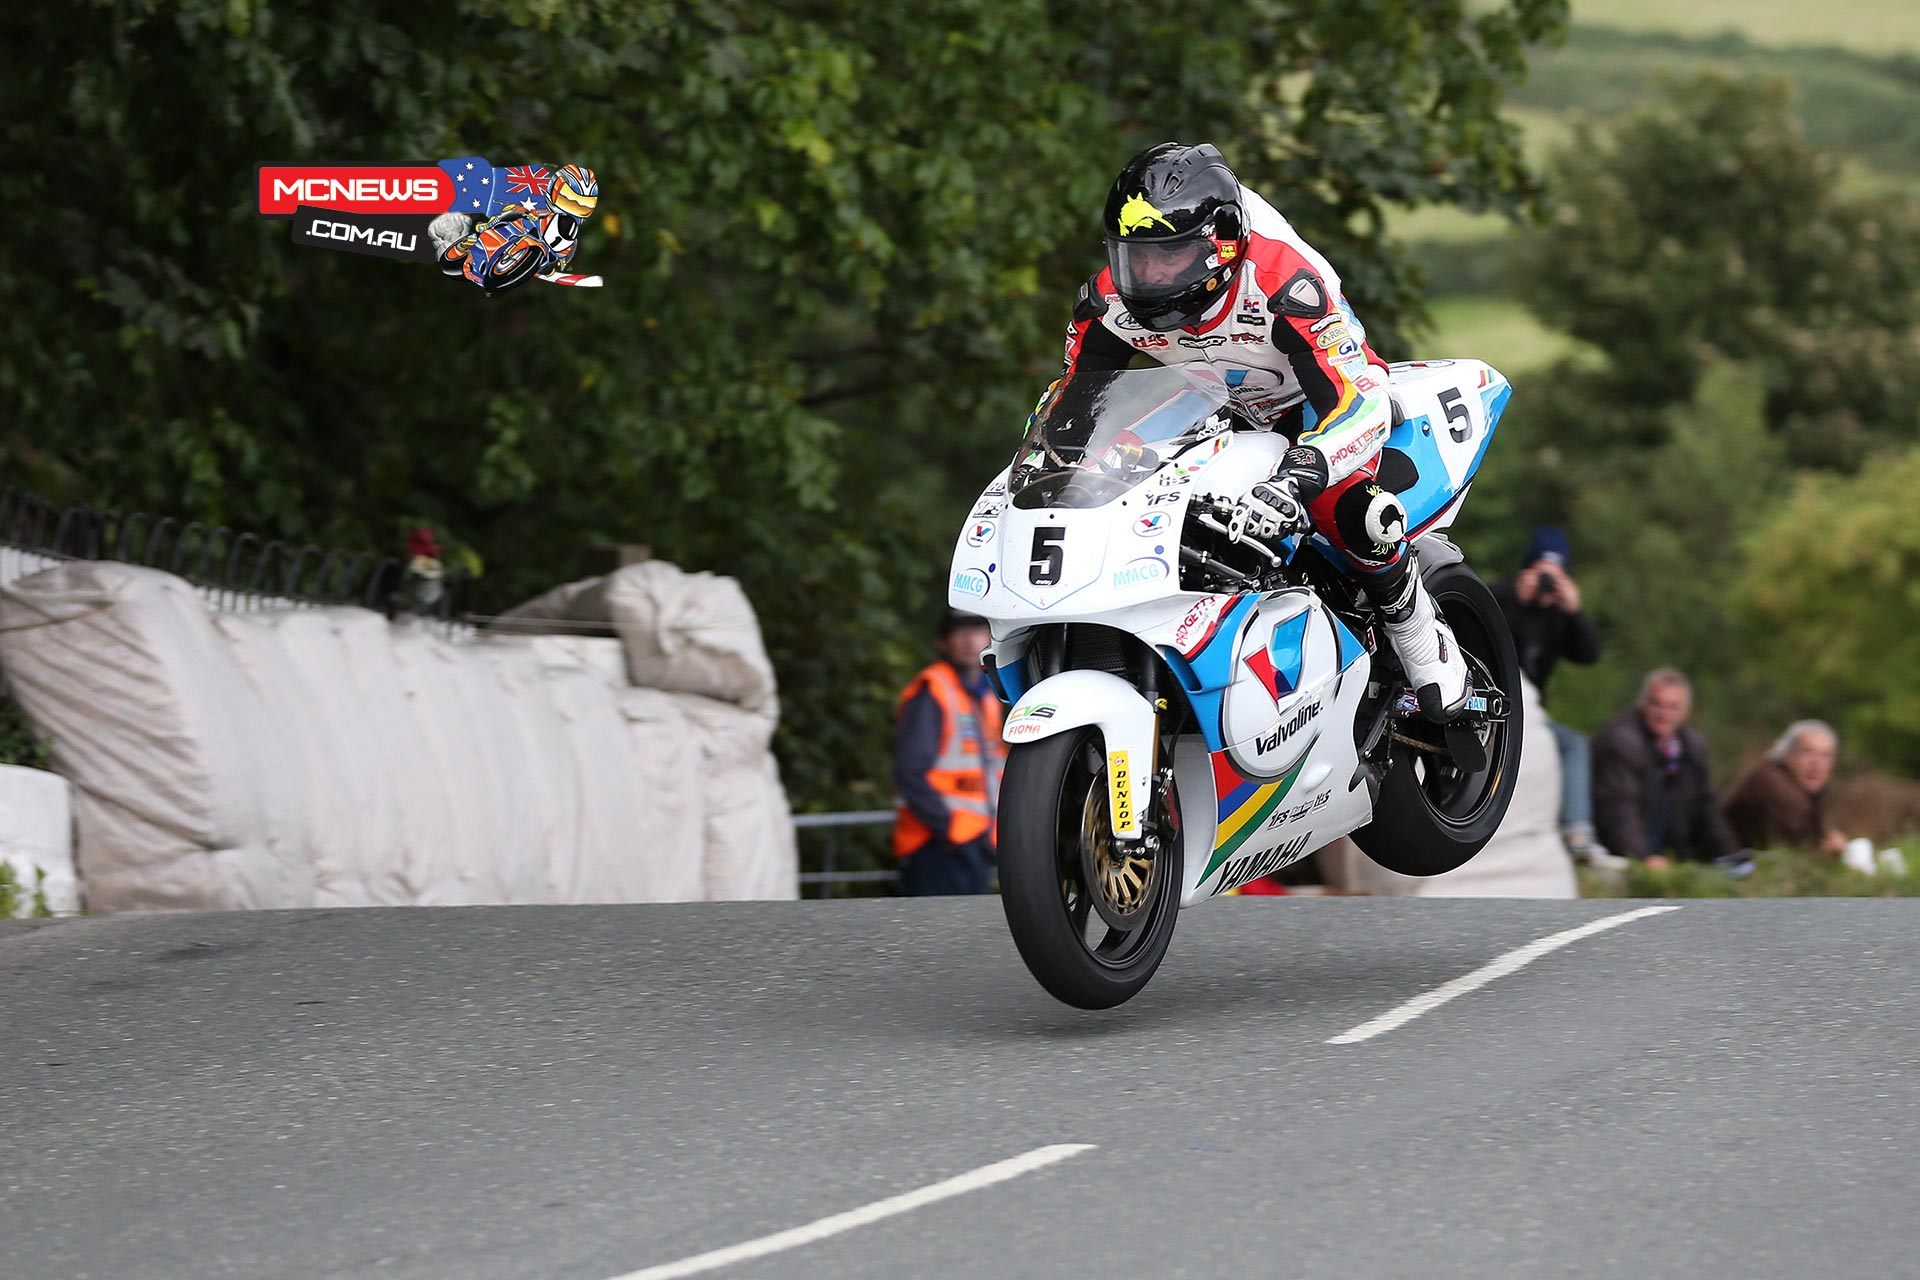 Bruce Anstey leads Classic TT qualifying on Padgetts YZR500 Yamaha